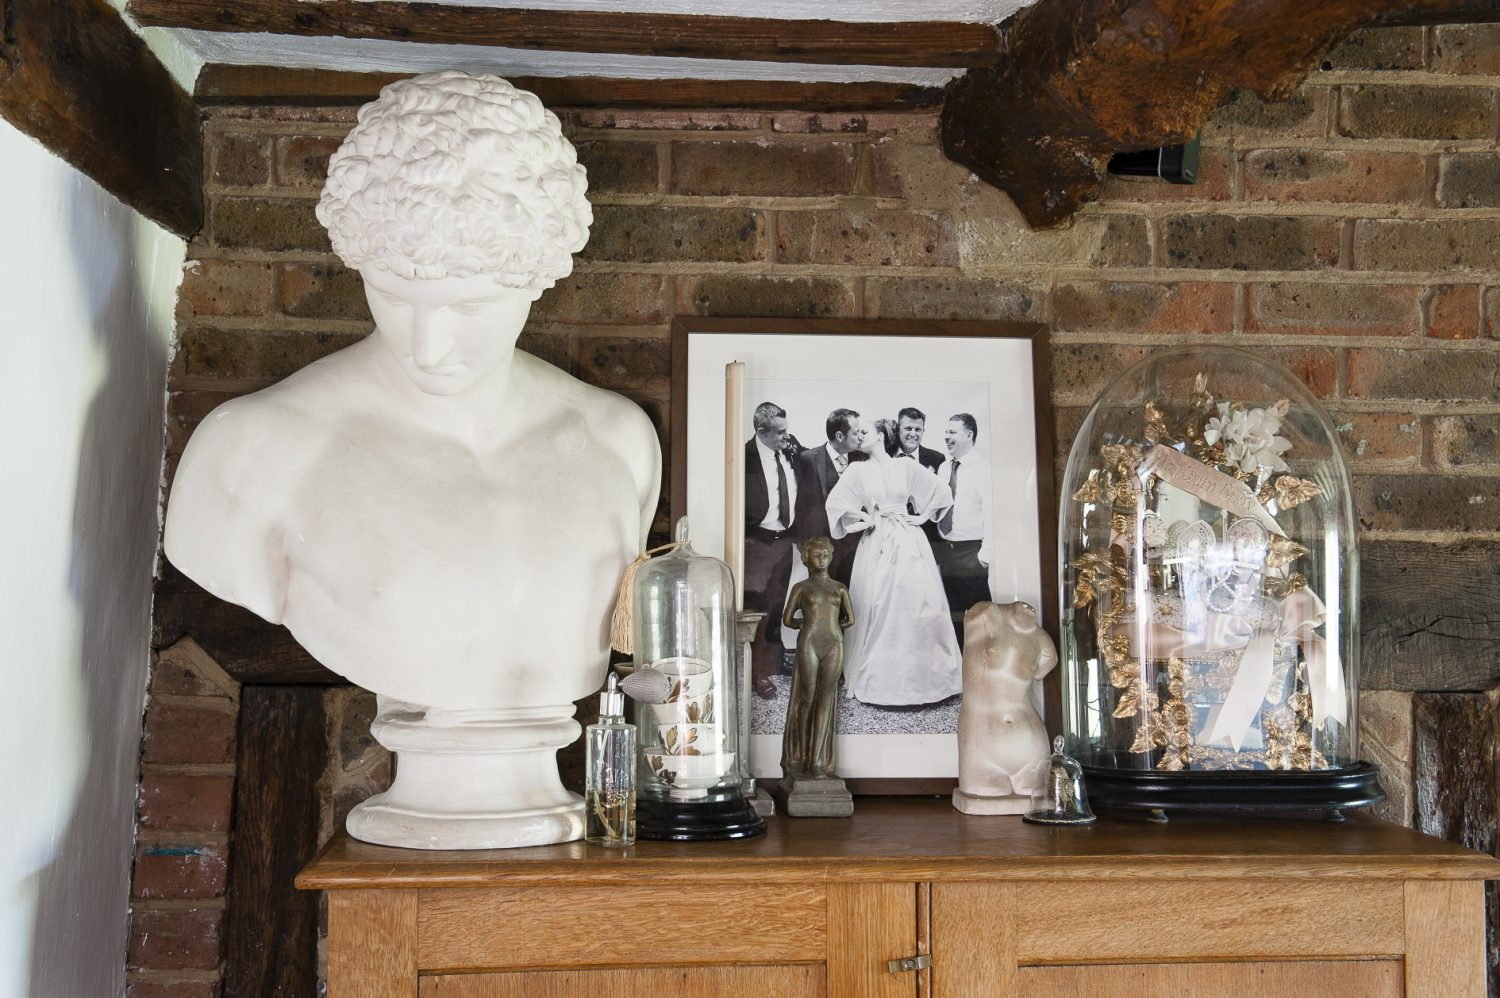 The couples' own wedding photograph sits amid other special items